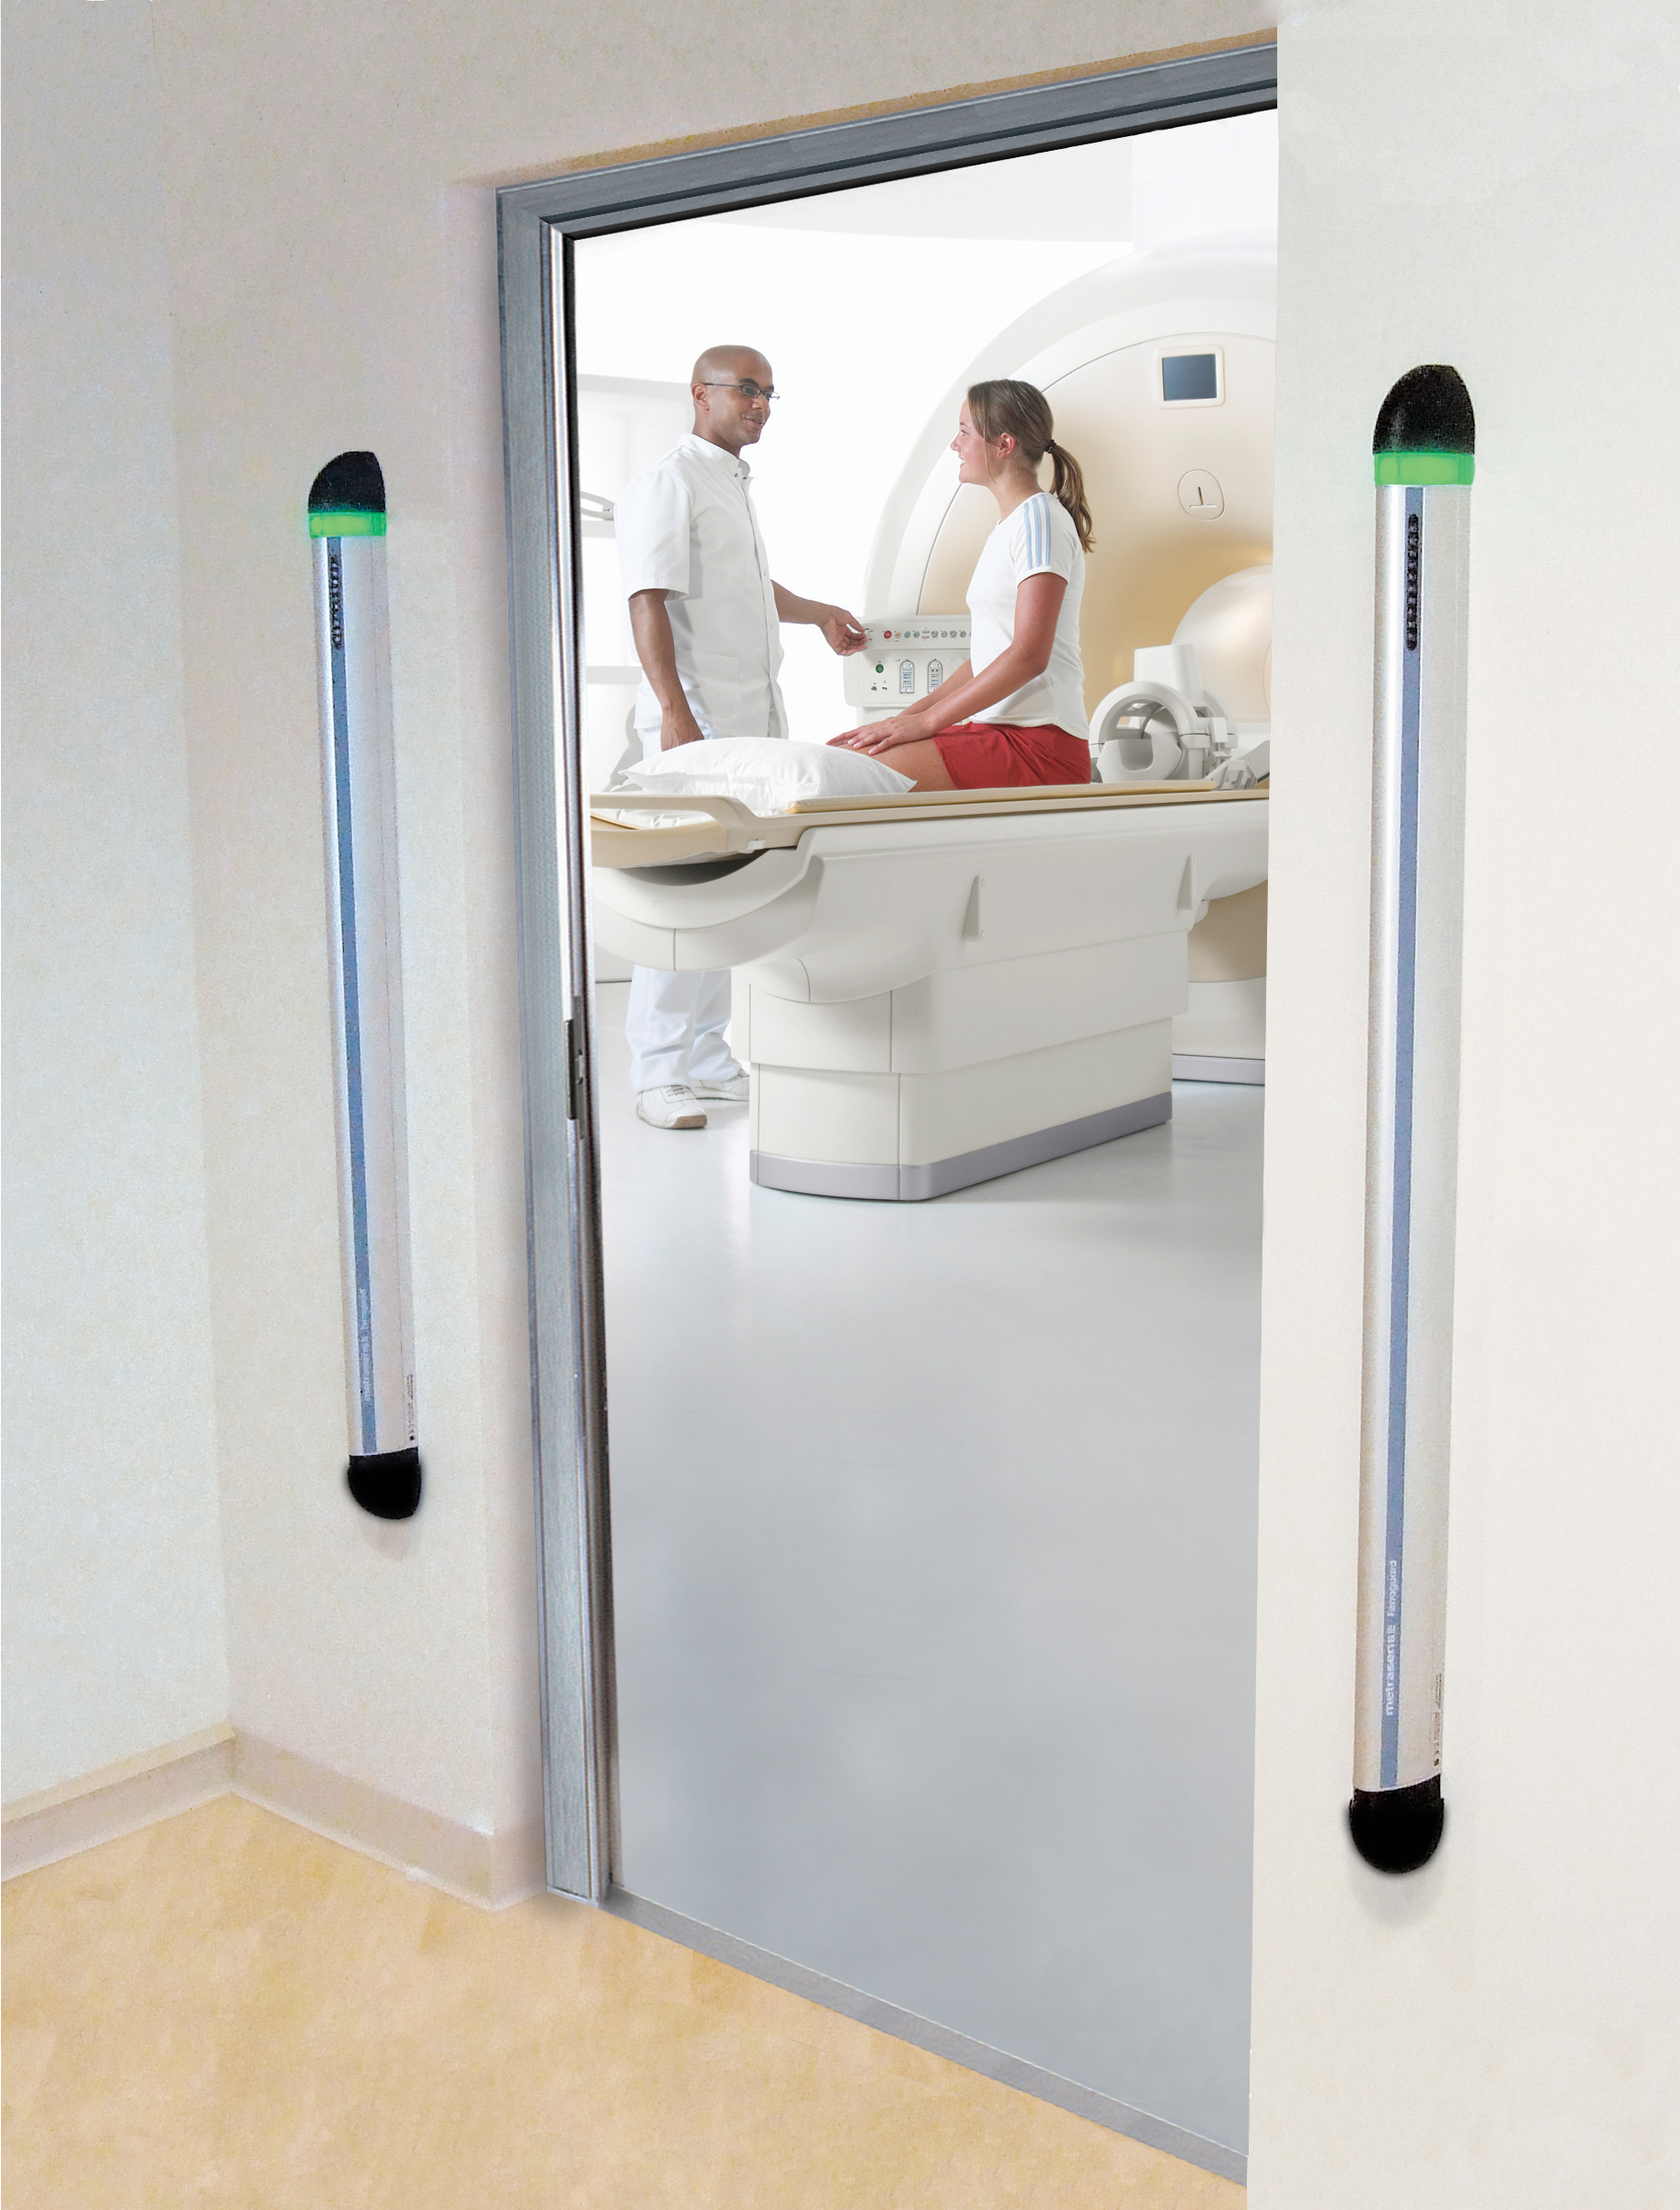 Ferromagnetic detection systems are placed outside the door of an MRI room to detect ferrous risk items approaching the room, enhancing MRI safety.